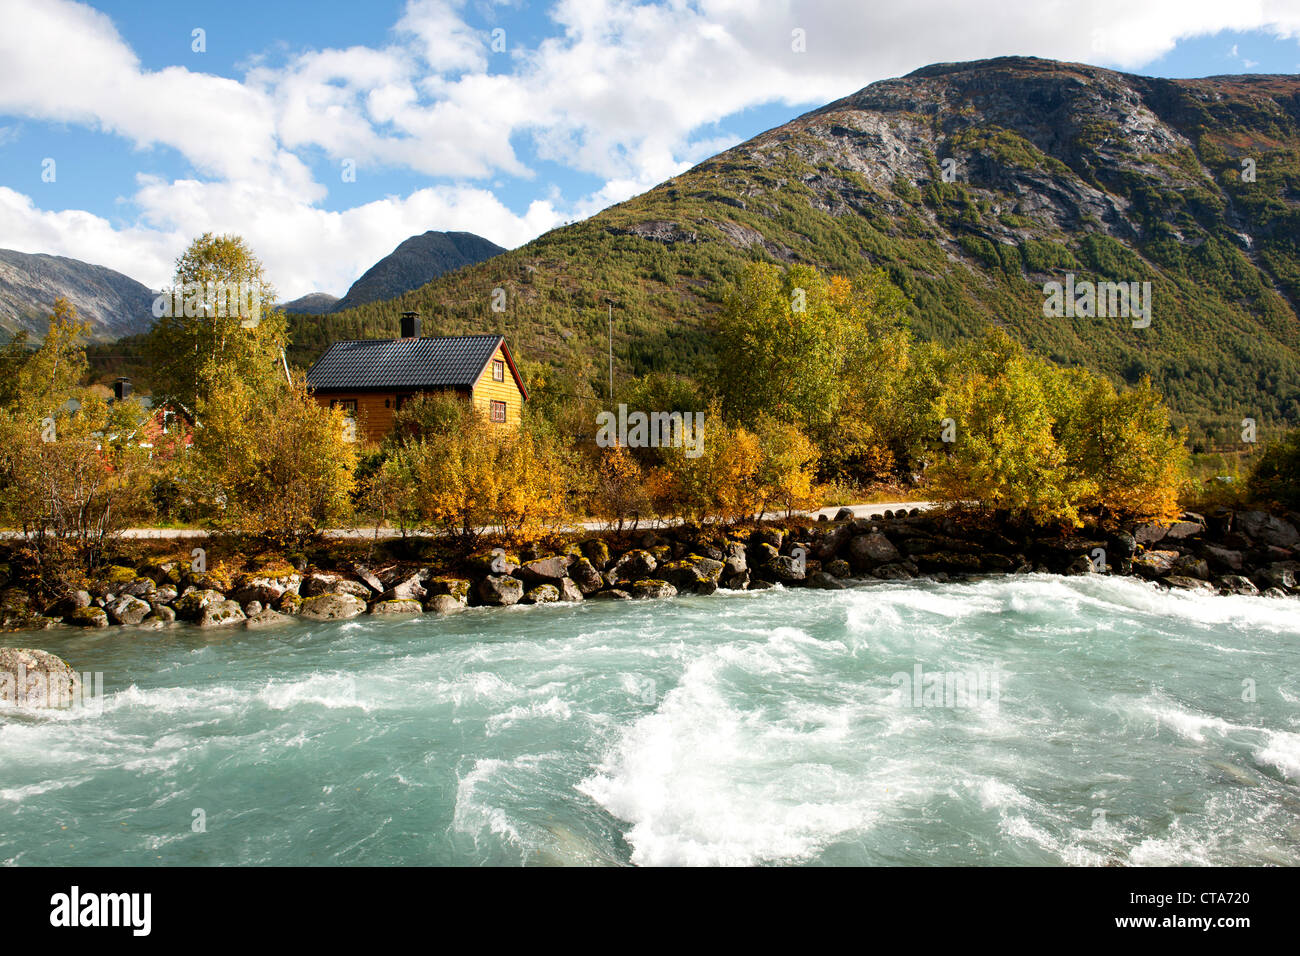 Tourquoise coloured river in front of a wooden house, Autumn, Trail to Nigardsbreen, Jostedalsbreen, Jostedalen, - Stock Image